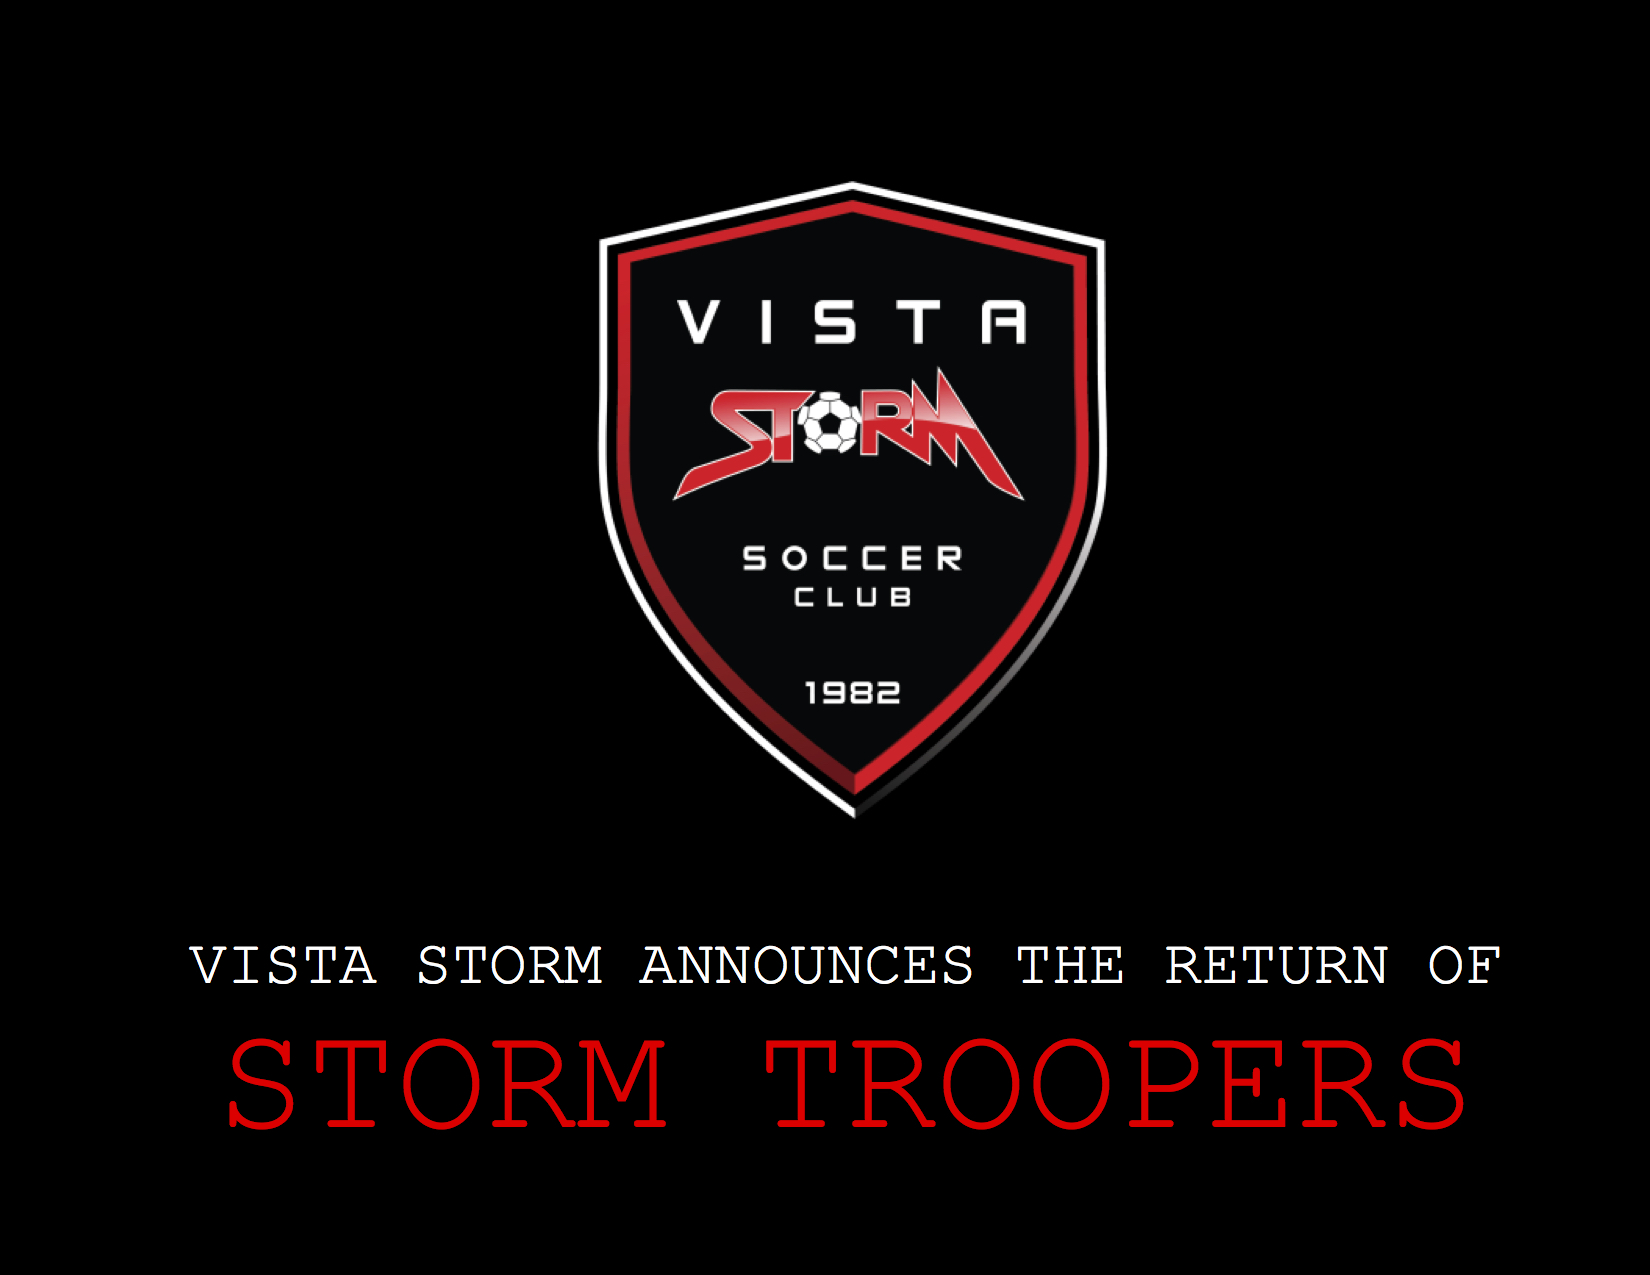 STORM TROOPERS RESUME THIS SATURDAY 12.16